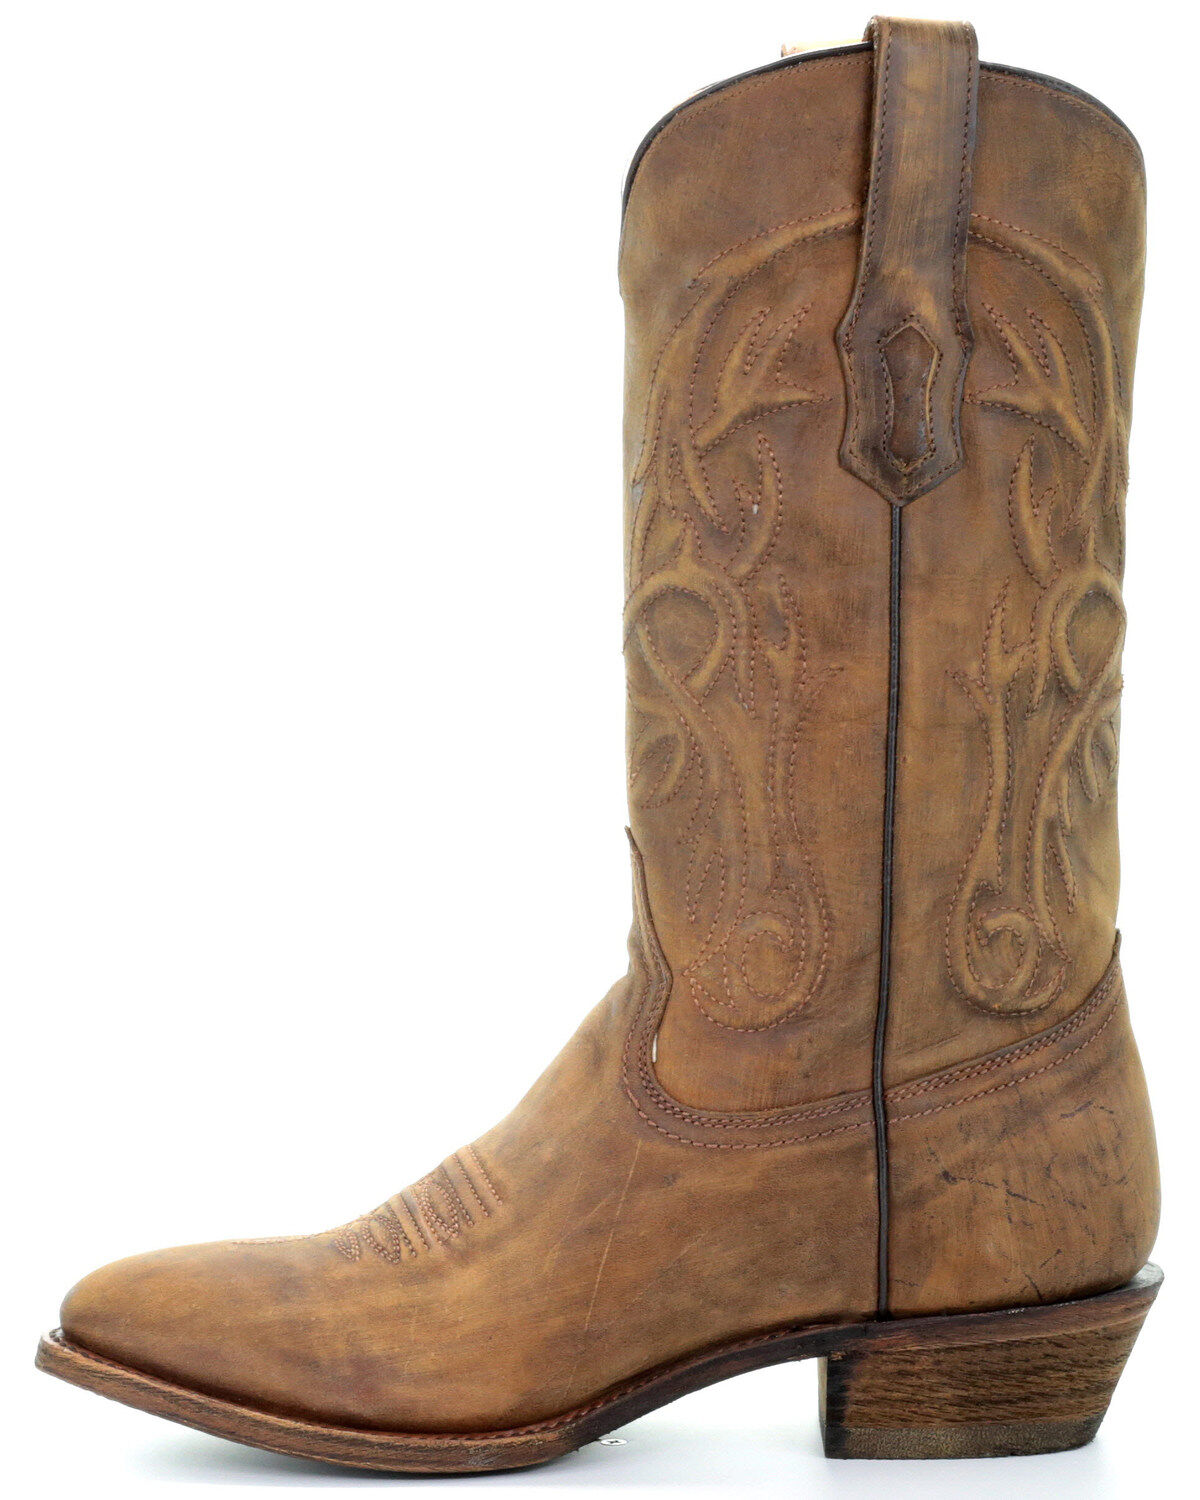 Corral Men's Roderick Western Boots